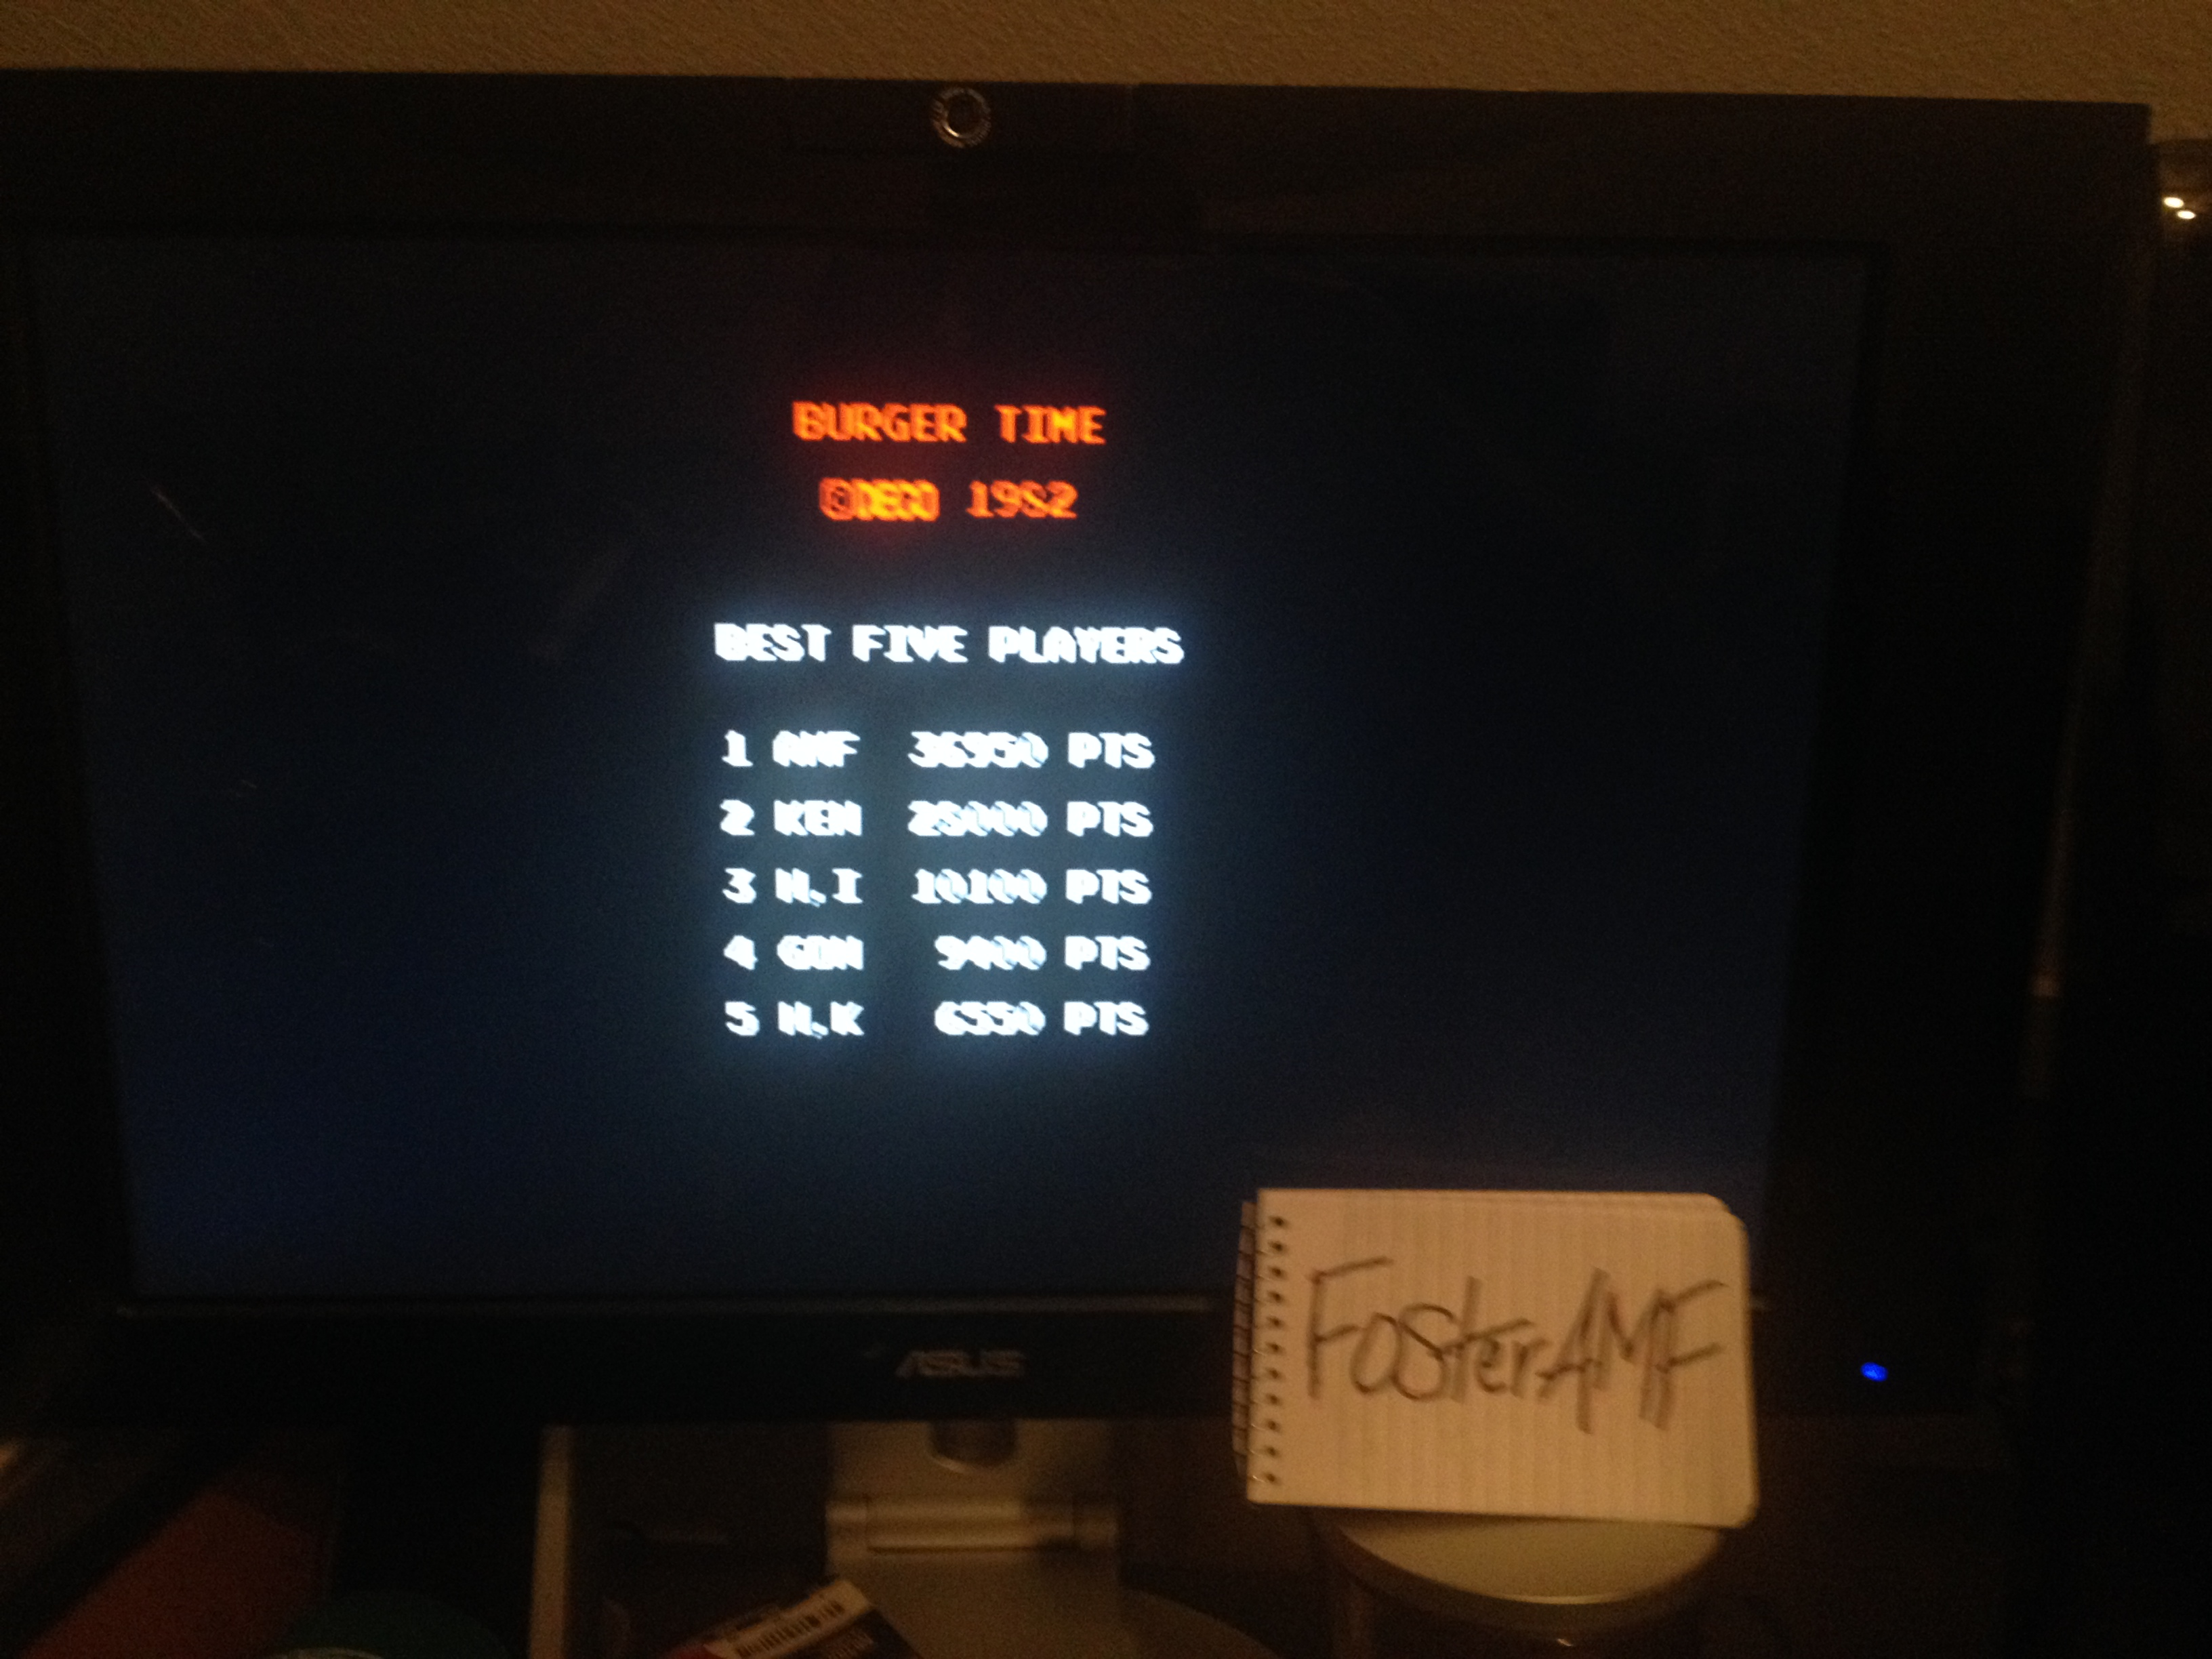 FosterAMF: BurgerTime (Arcade Emulated / M.A.M.E.) 36,950 points on 2014-05-20 03:02:33